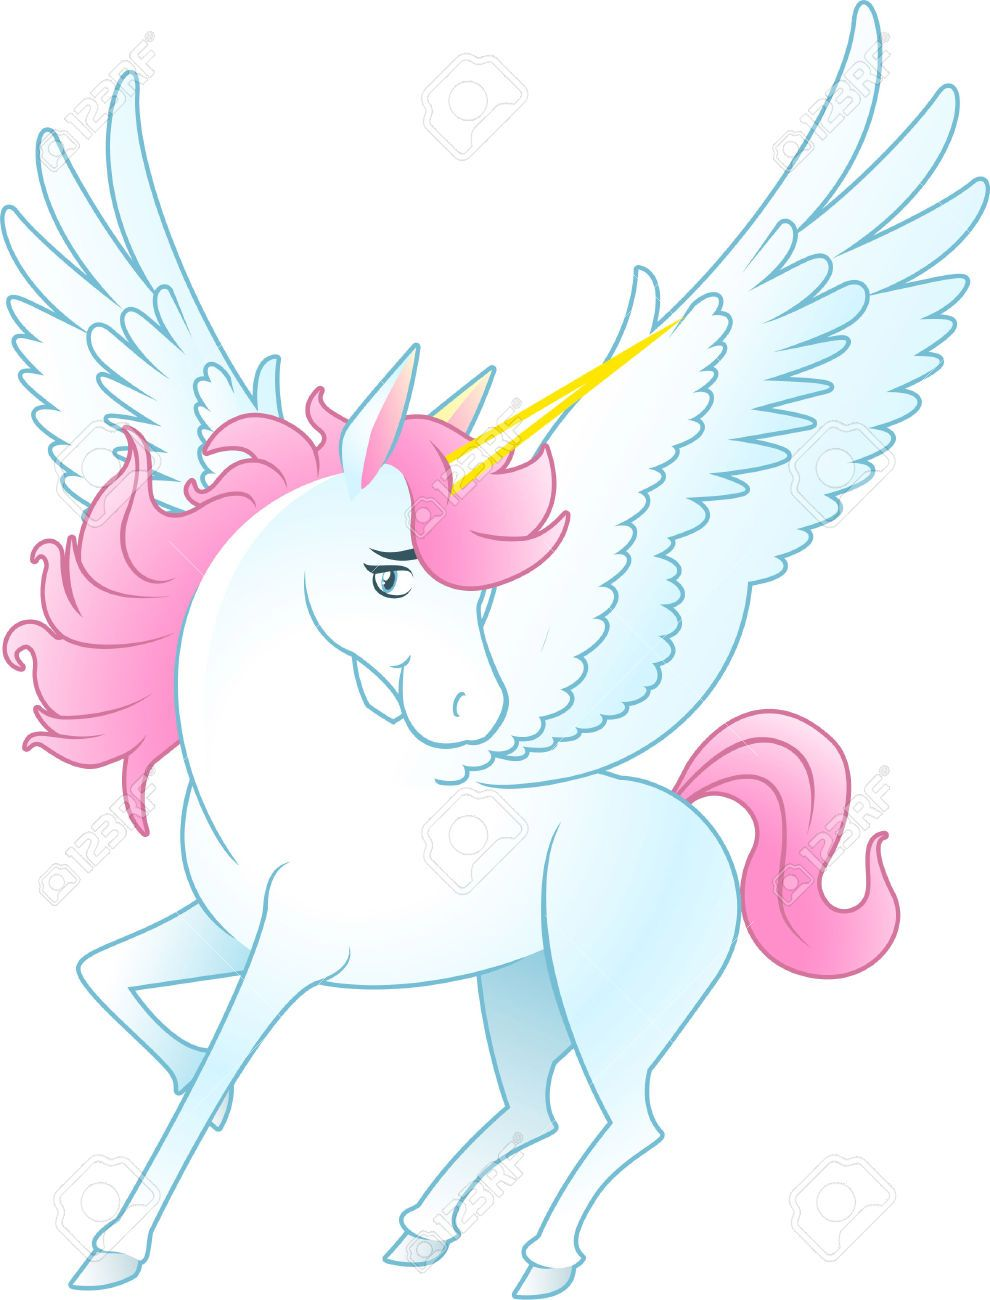 Unicorn Pegasus with opened wings and yellow horn, pink hair and tail vector illustration.